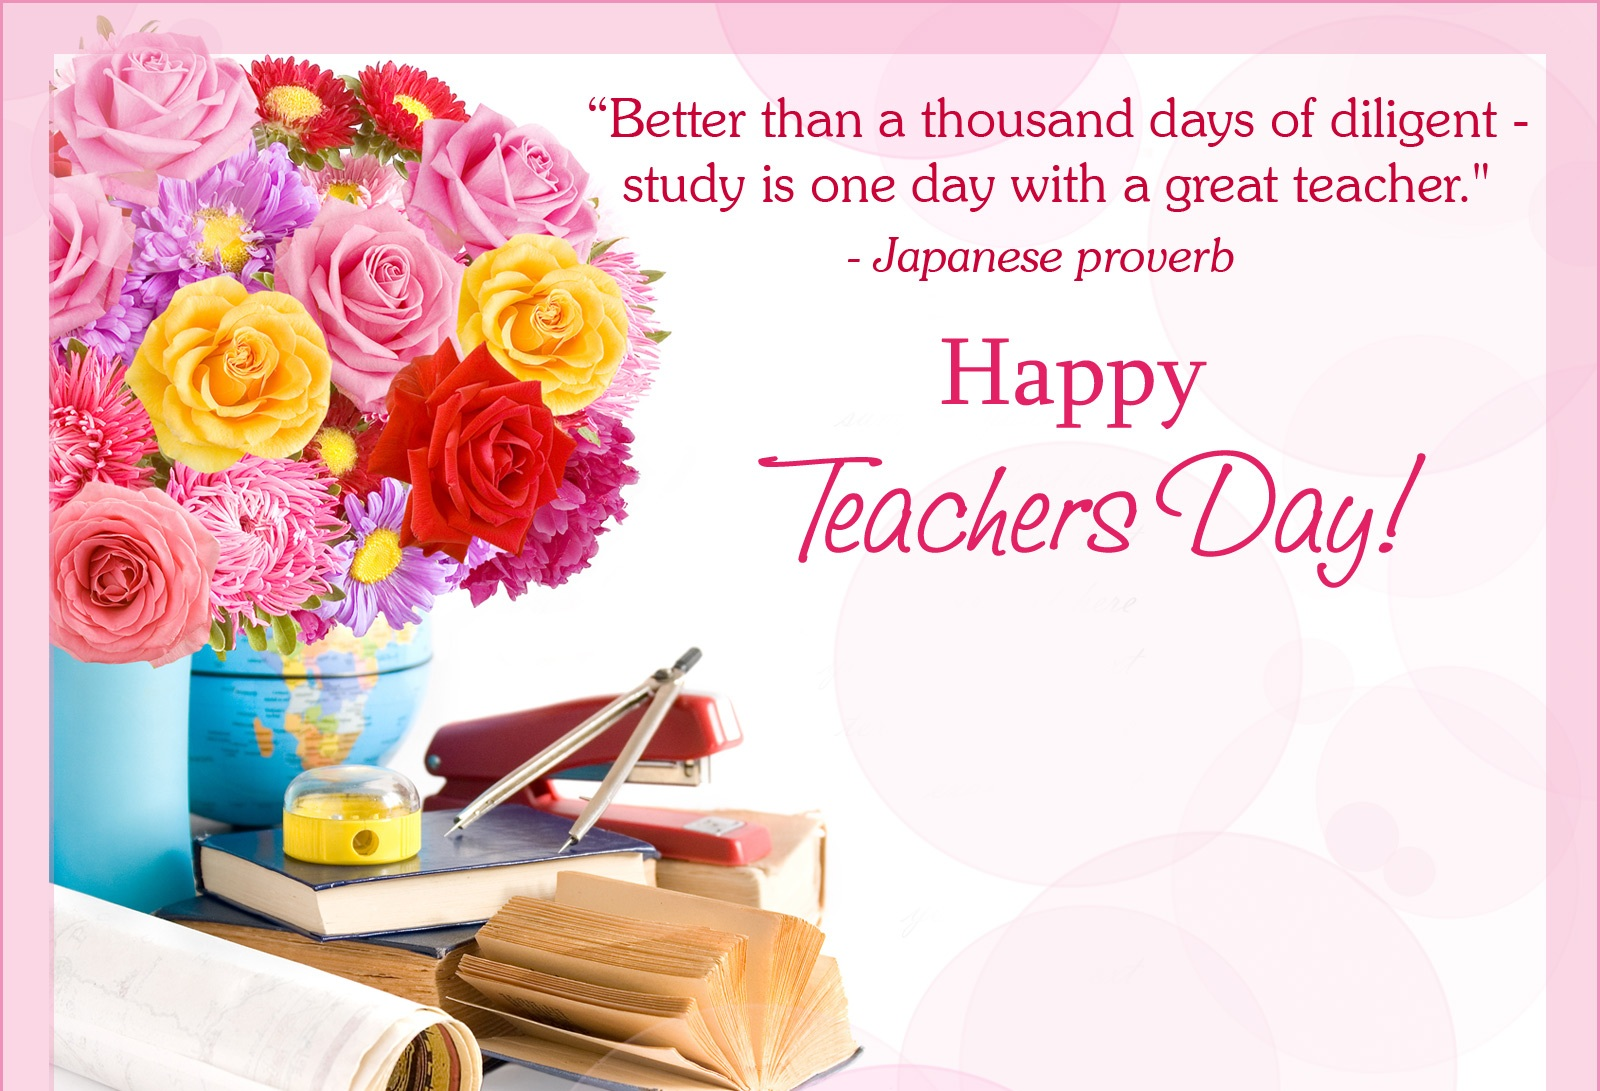 All In One Wallpapers Happy Teachers Day Wallpaper For Facebook